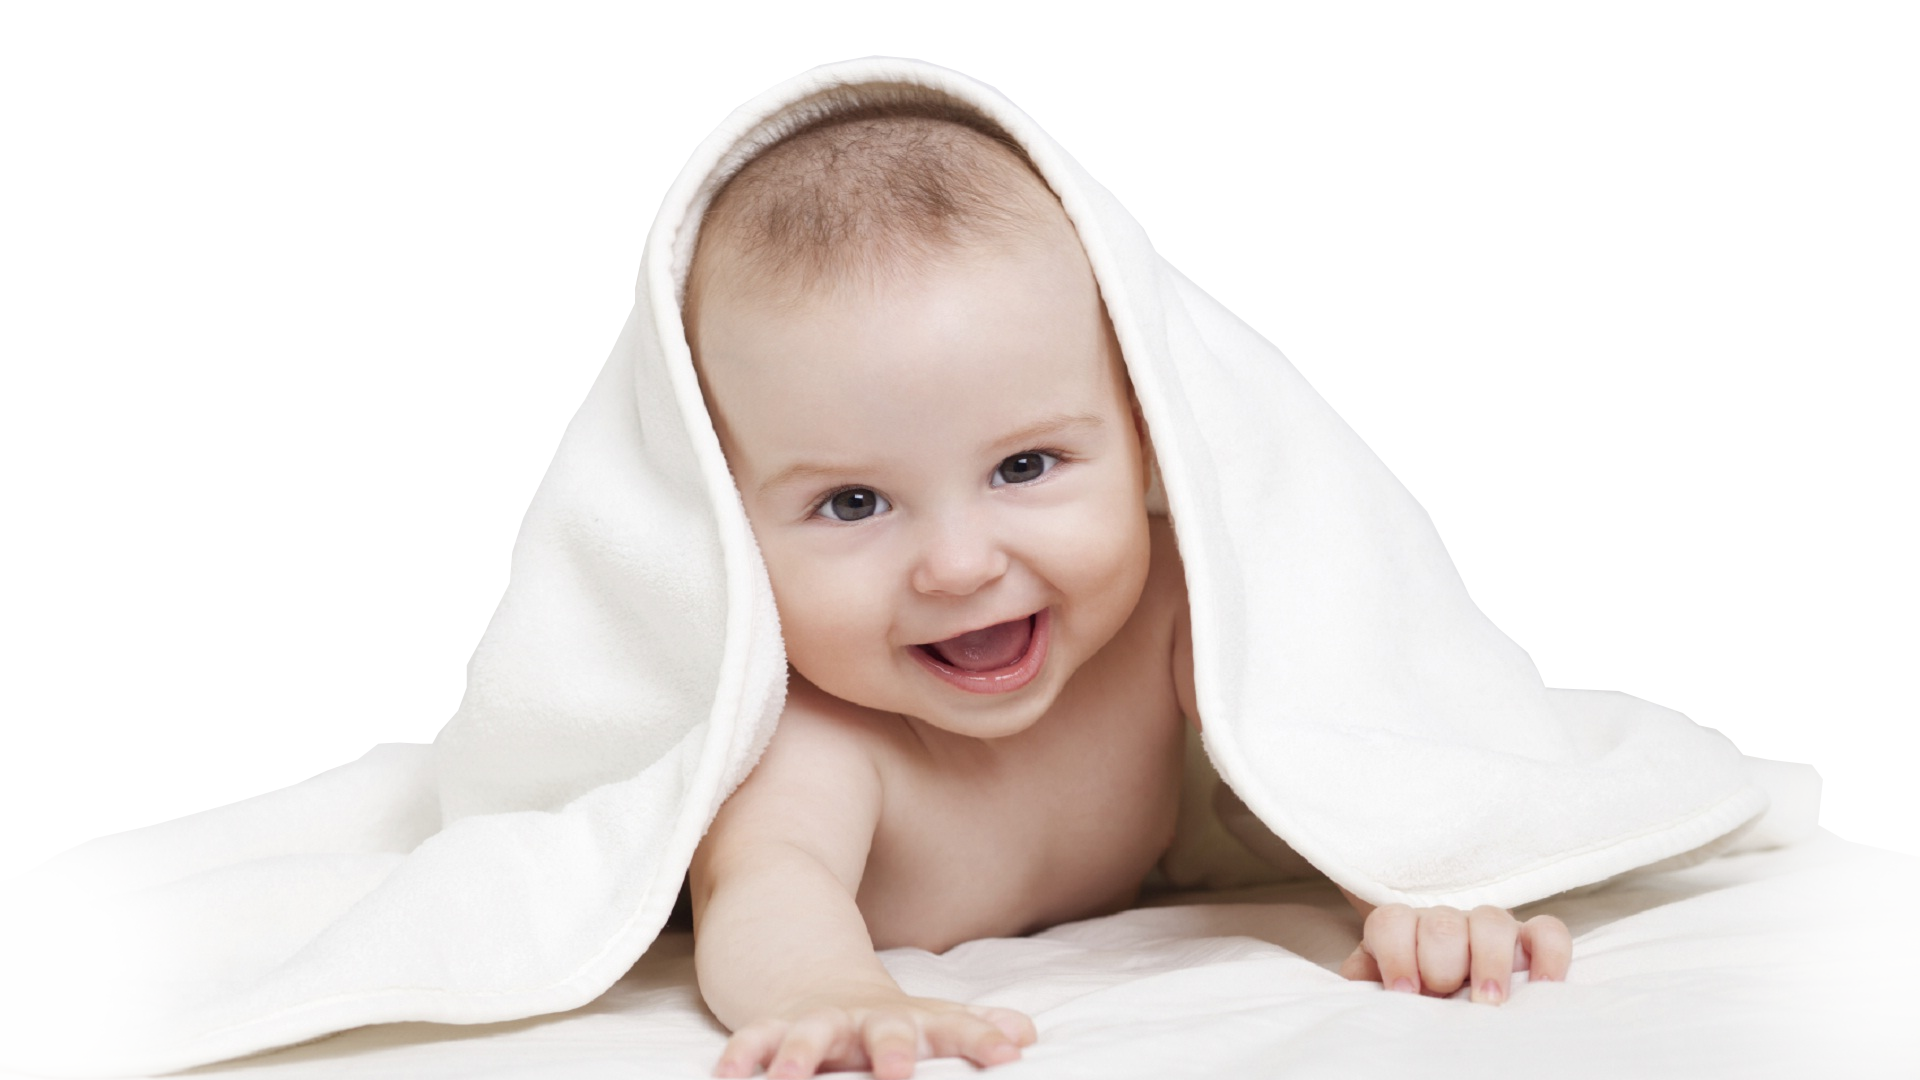 Baby White Background Image - Baby HD PNG